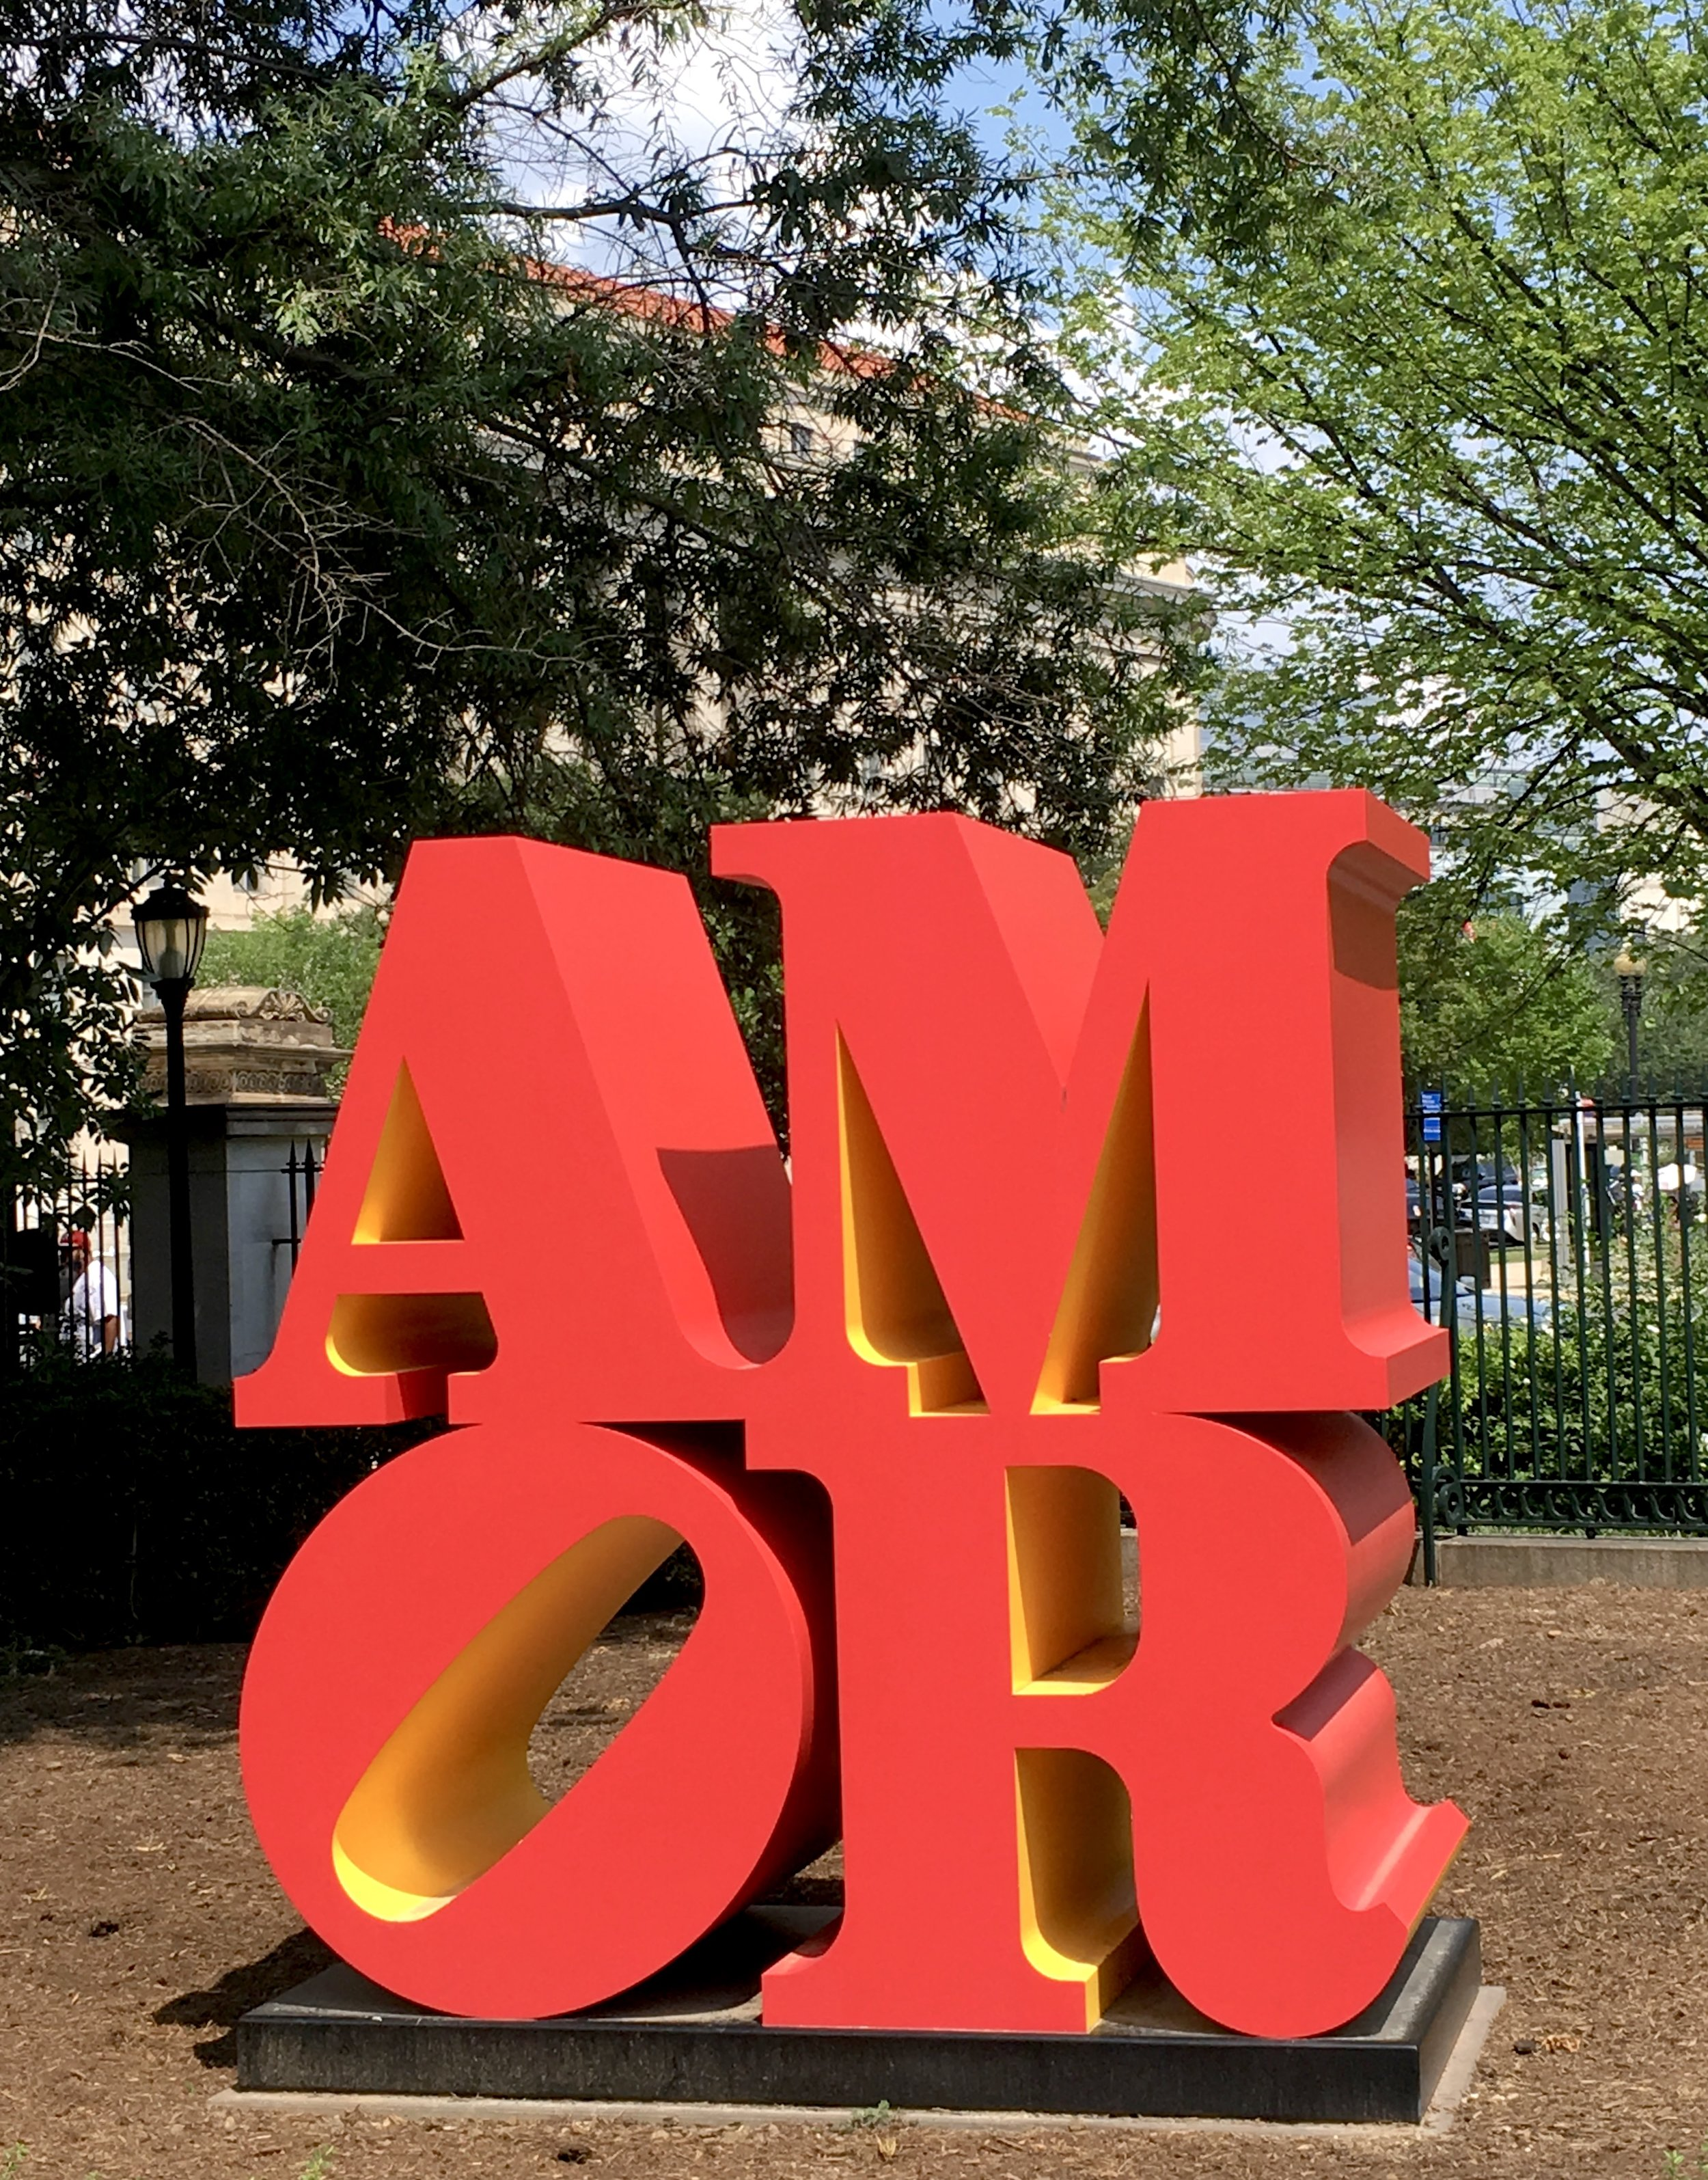 We just saw an exhibit of Robert Indiana's work in Buffalo last month. Here's another of his gorgeous pieces!